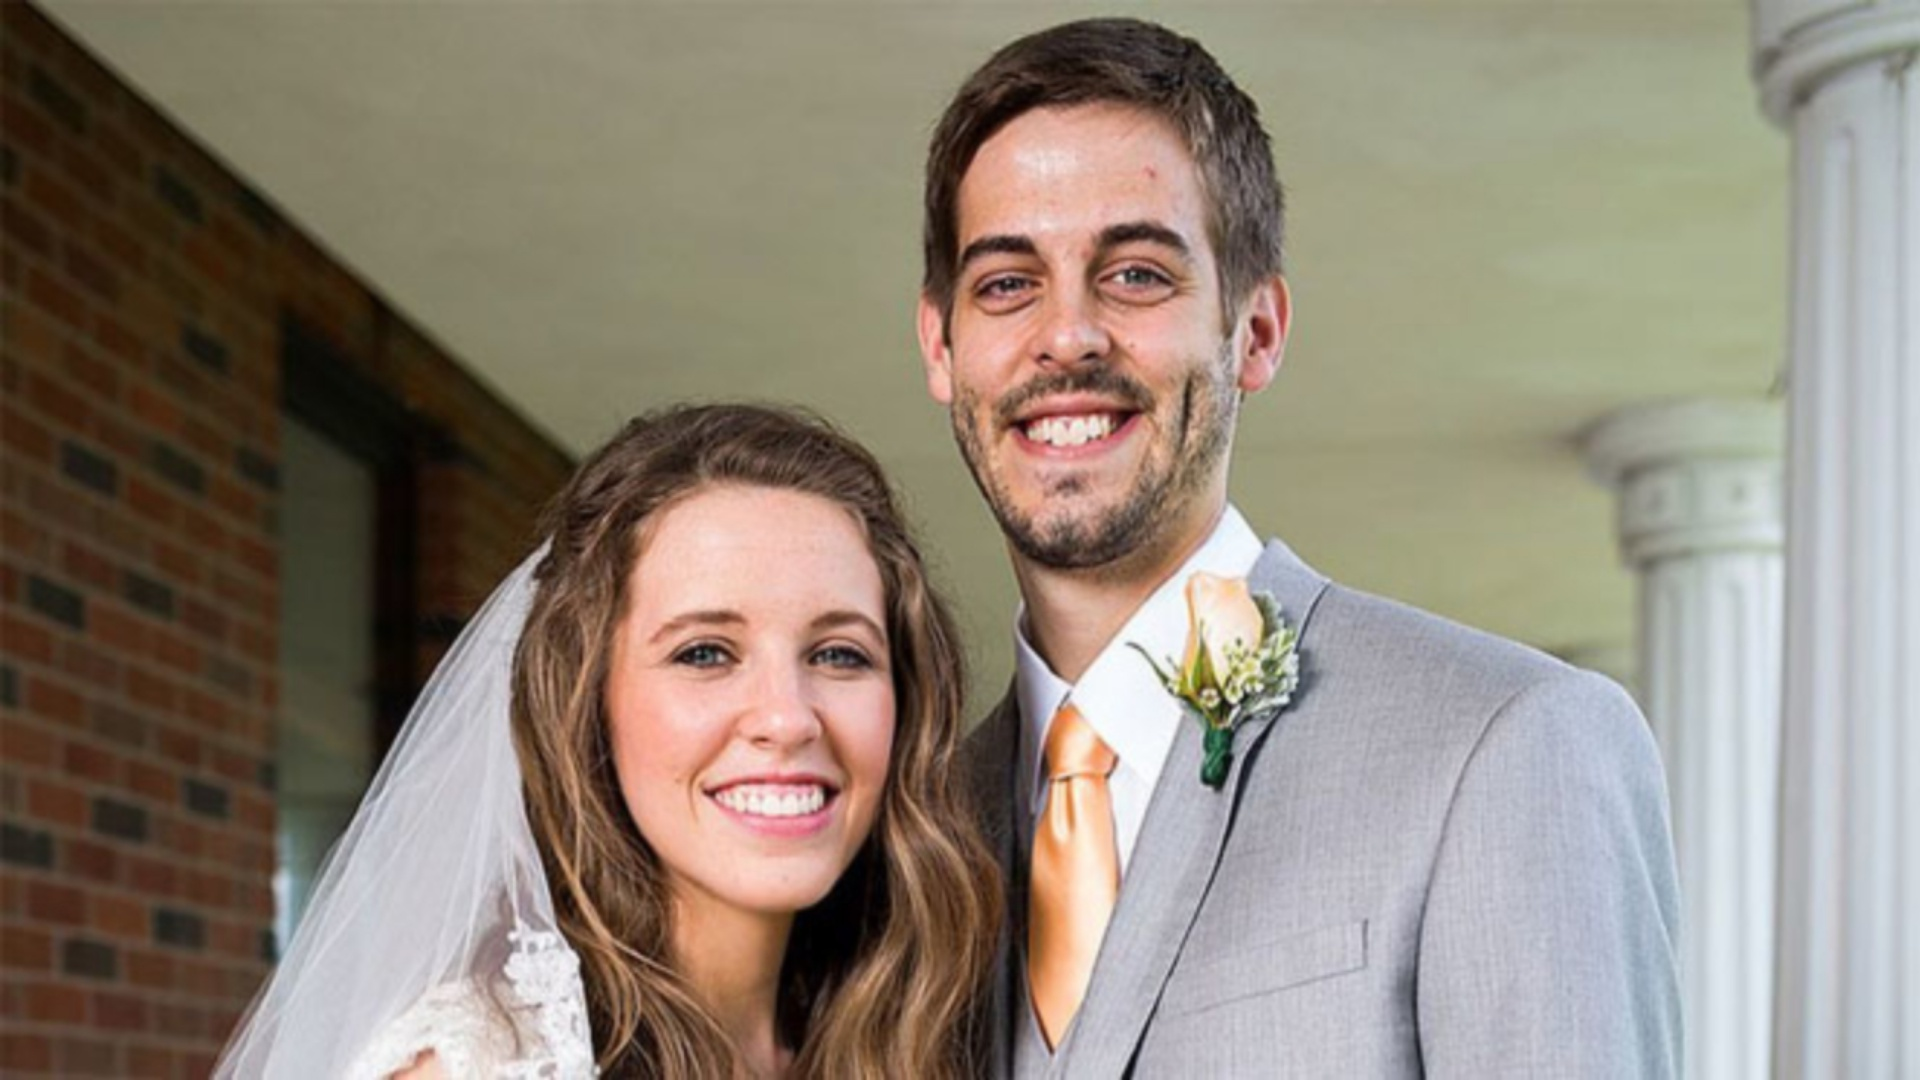 Jill and Derick Dillard's church hosts event asking to 'Pray the Gay Away'